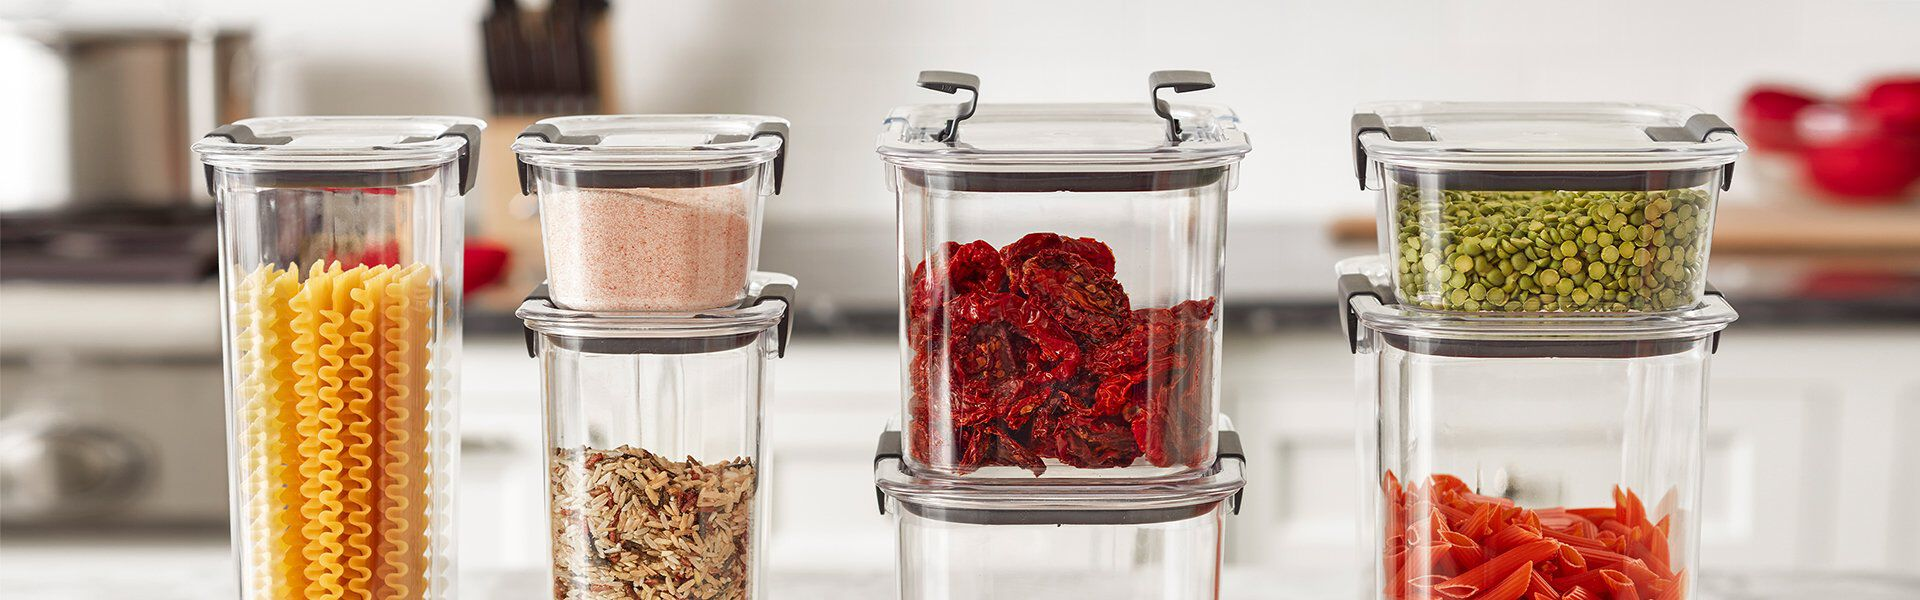 assorted brilliance food storage containers